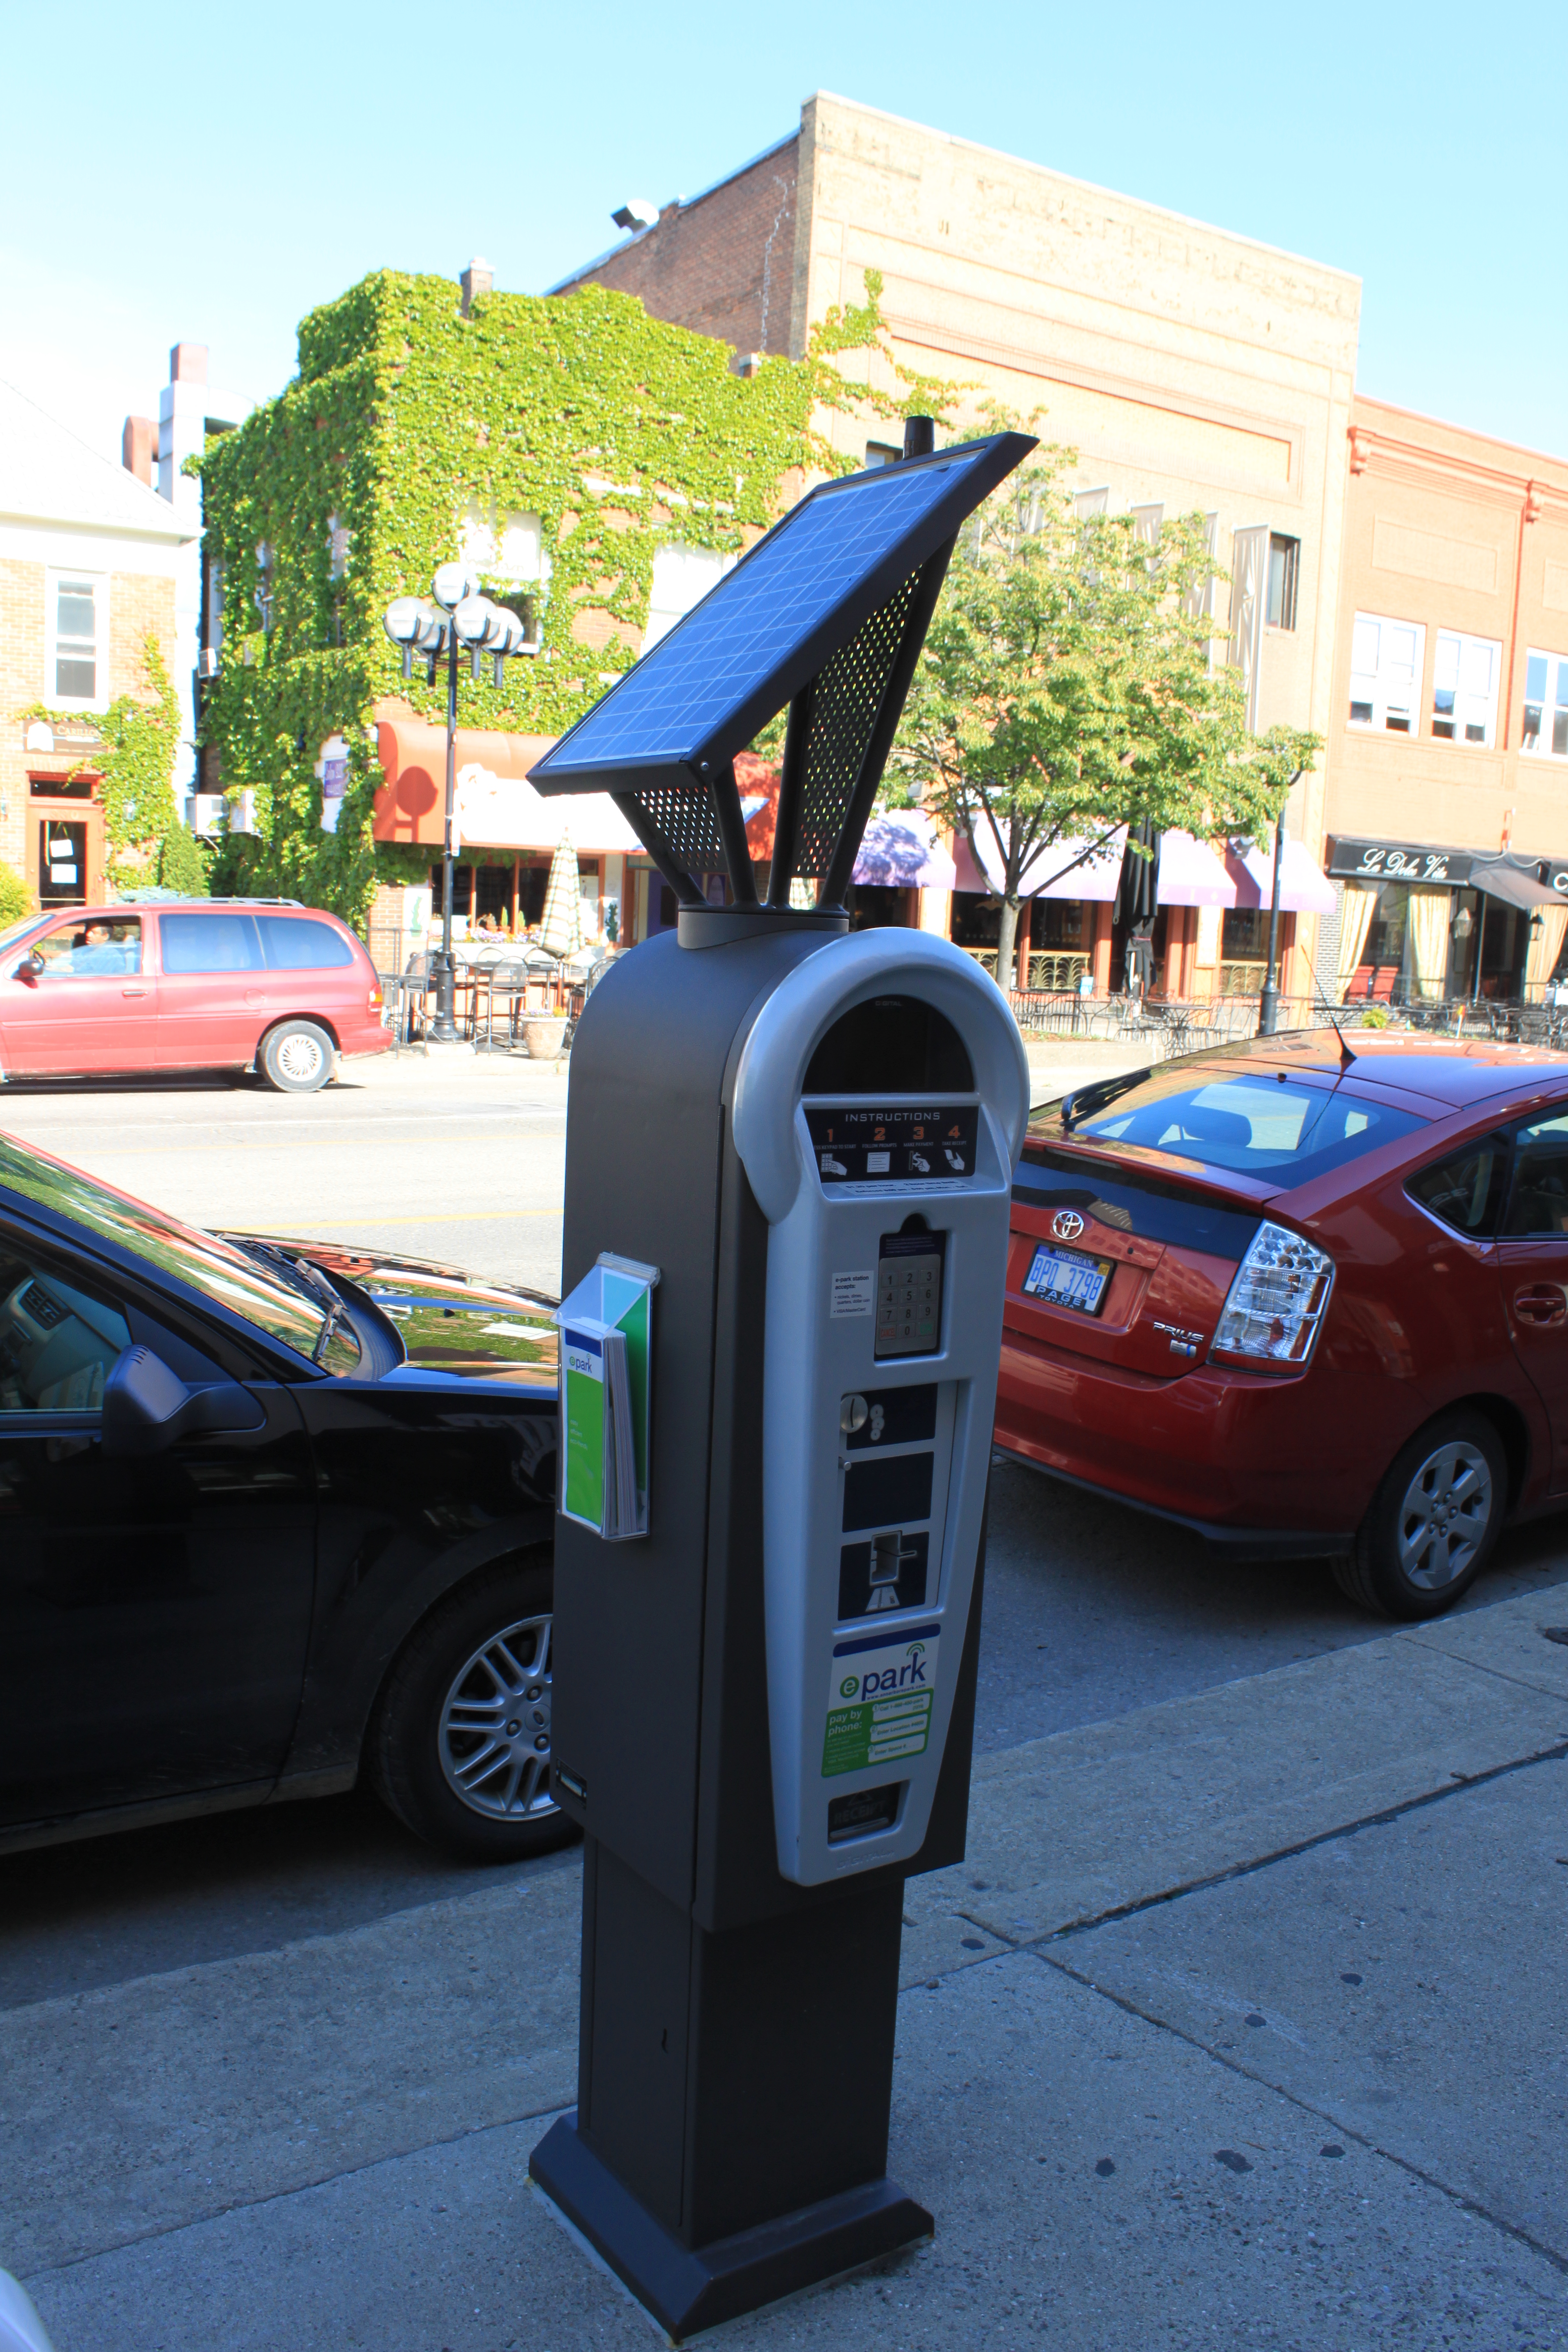 solar-powered multi-space meter, Ann Arbor, MI (also used by White Rock, BC, and Huston, Texas). Solar is optional.